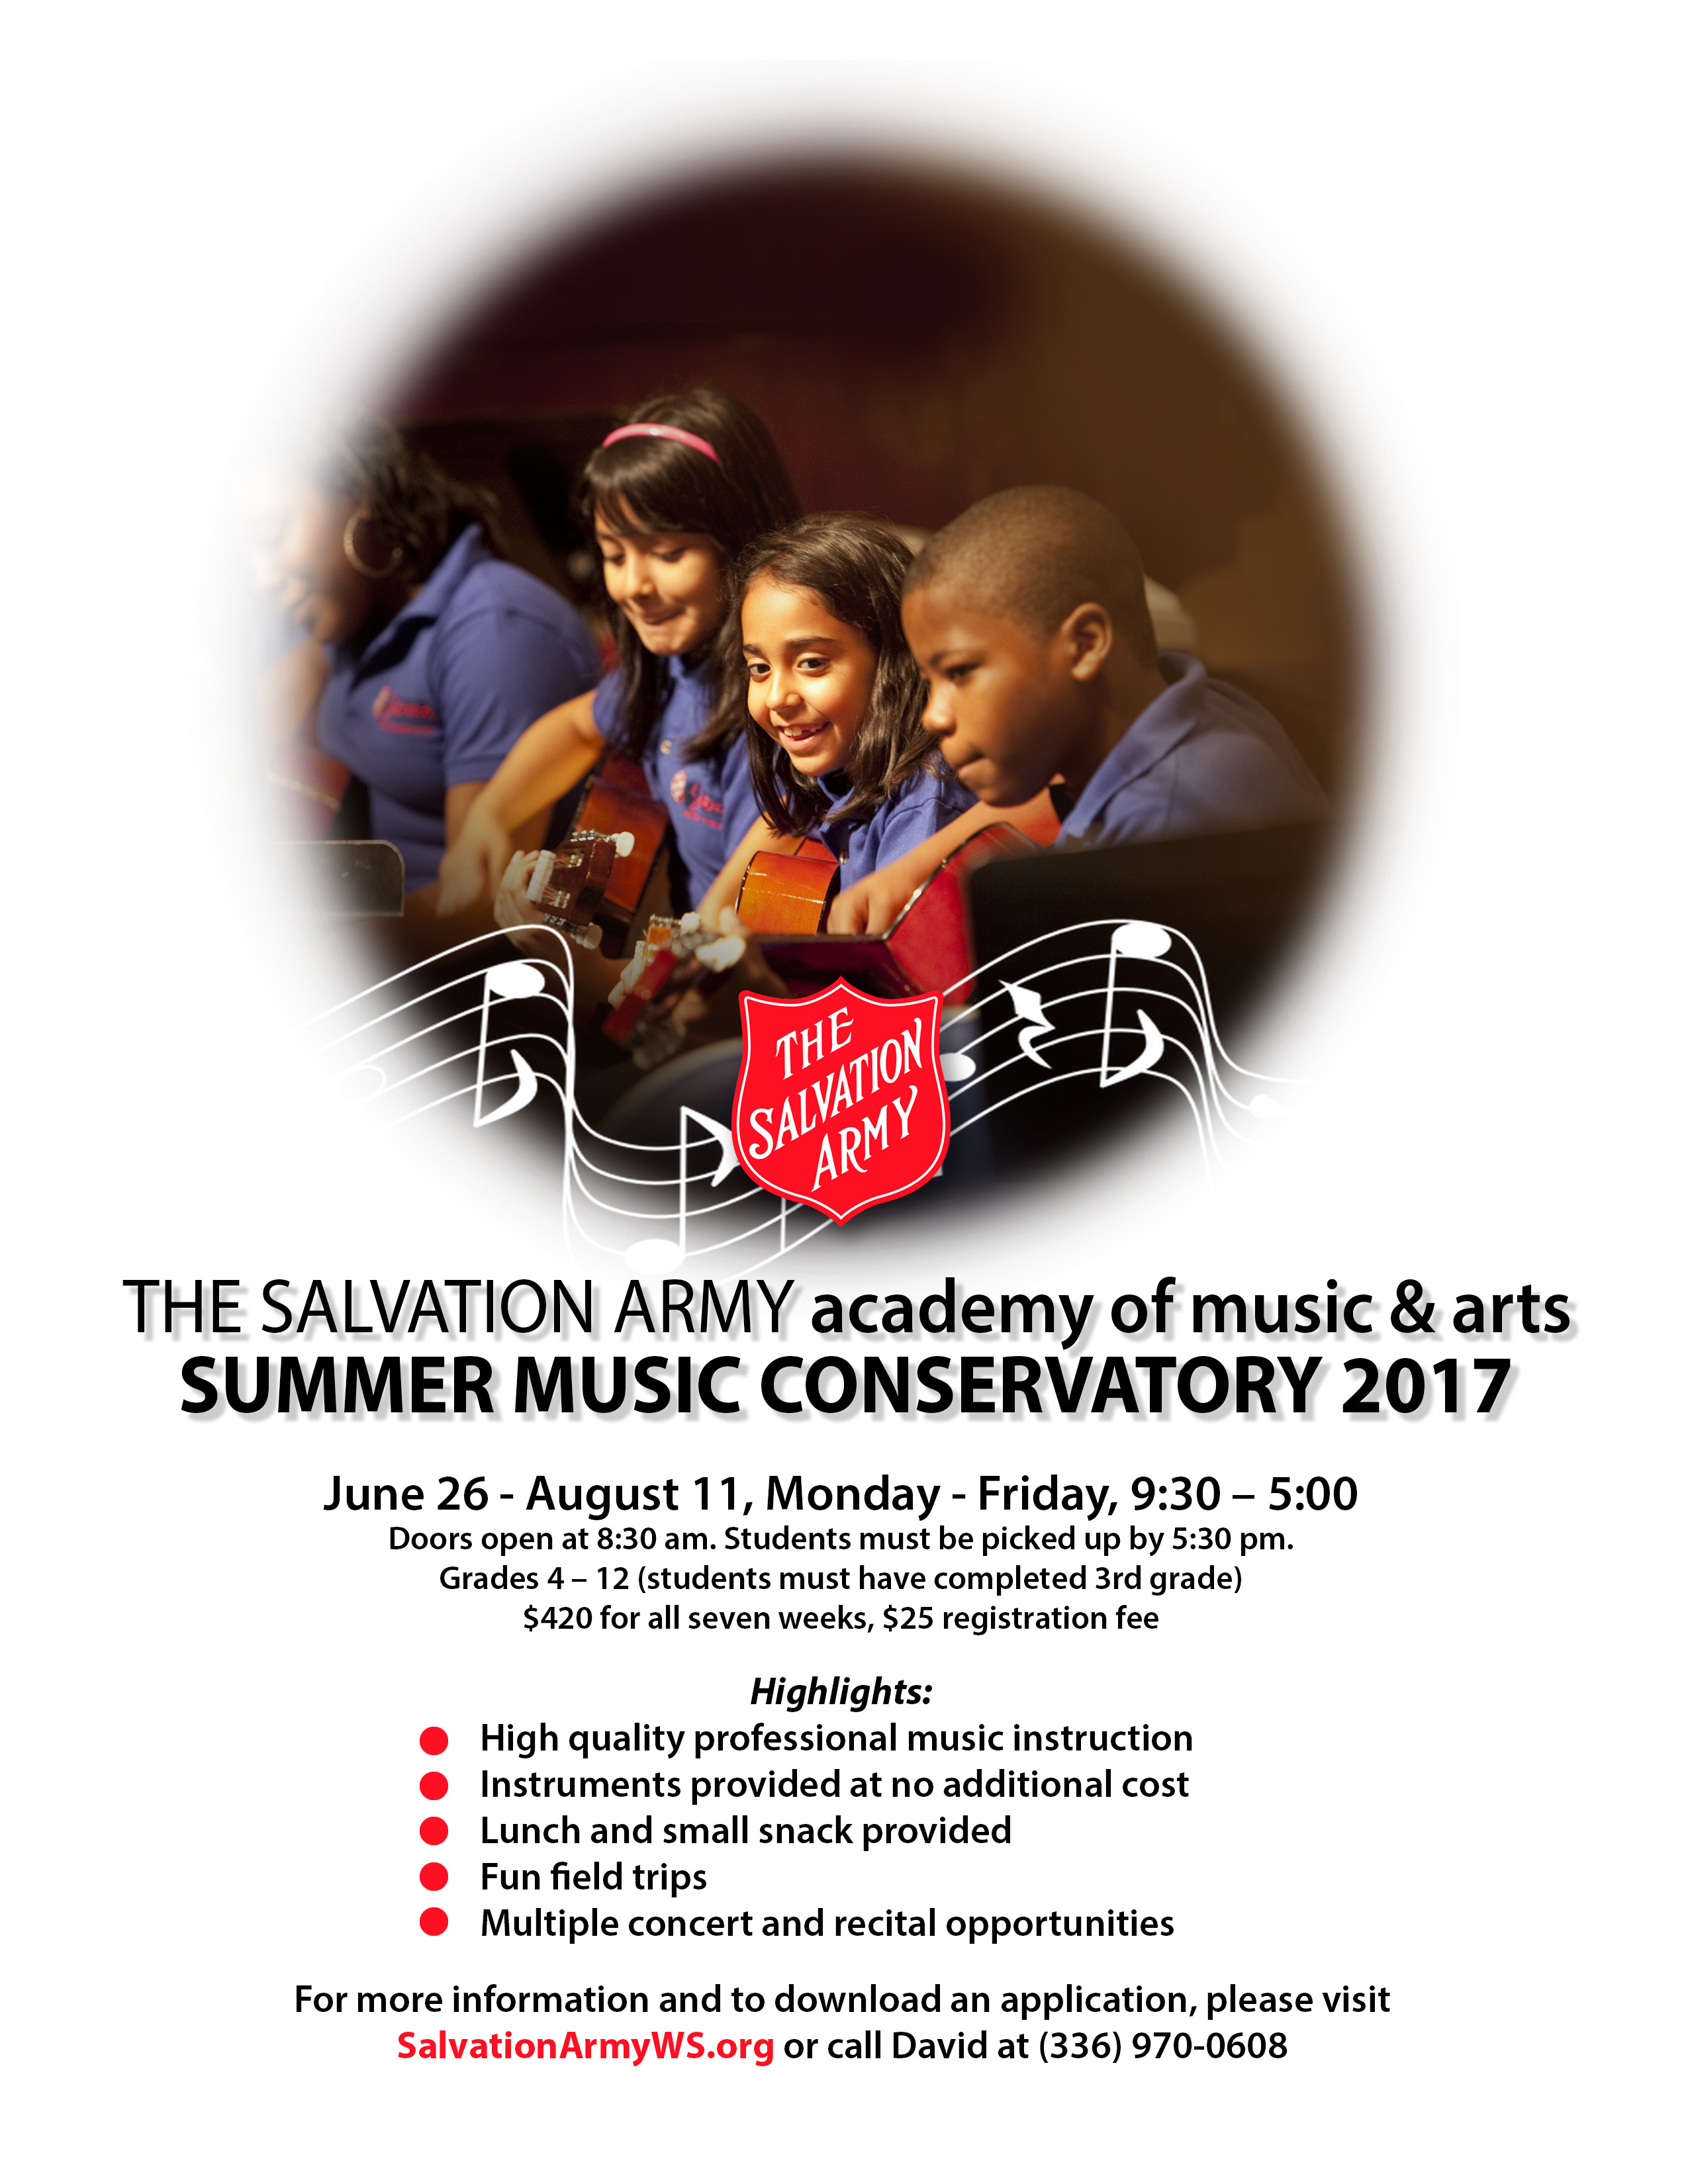 The Salvation Army Academy of Music & Arts Summer Conservatory